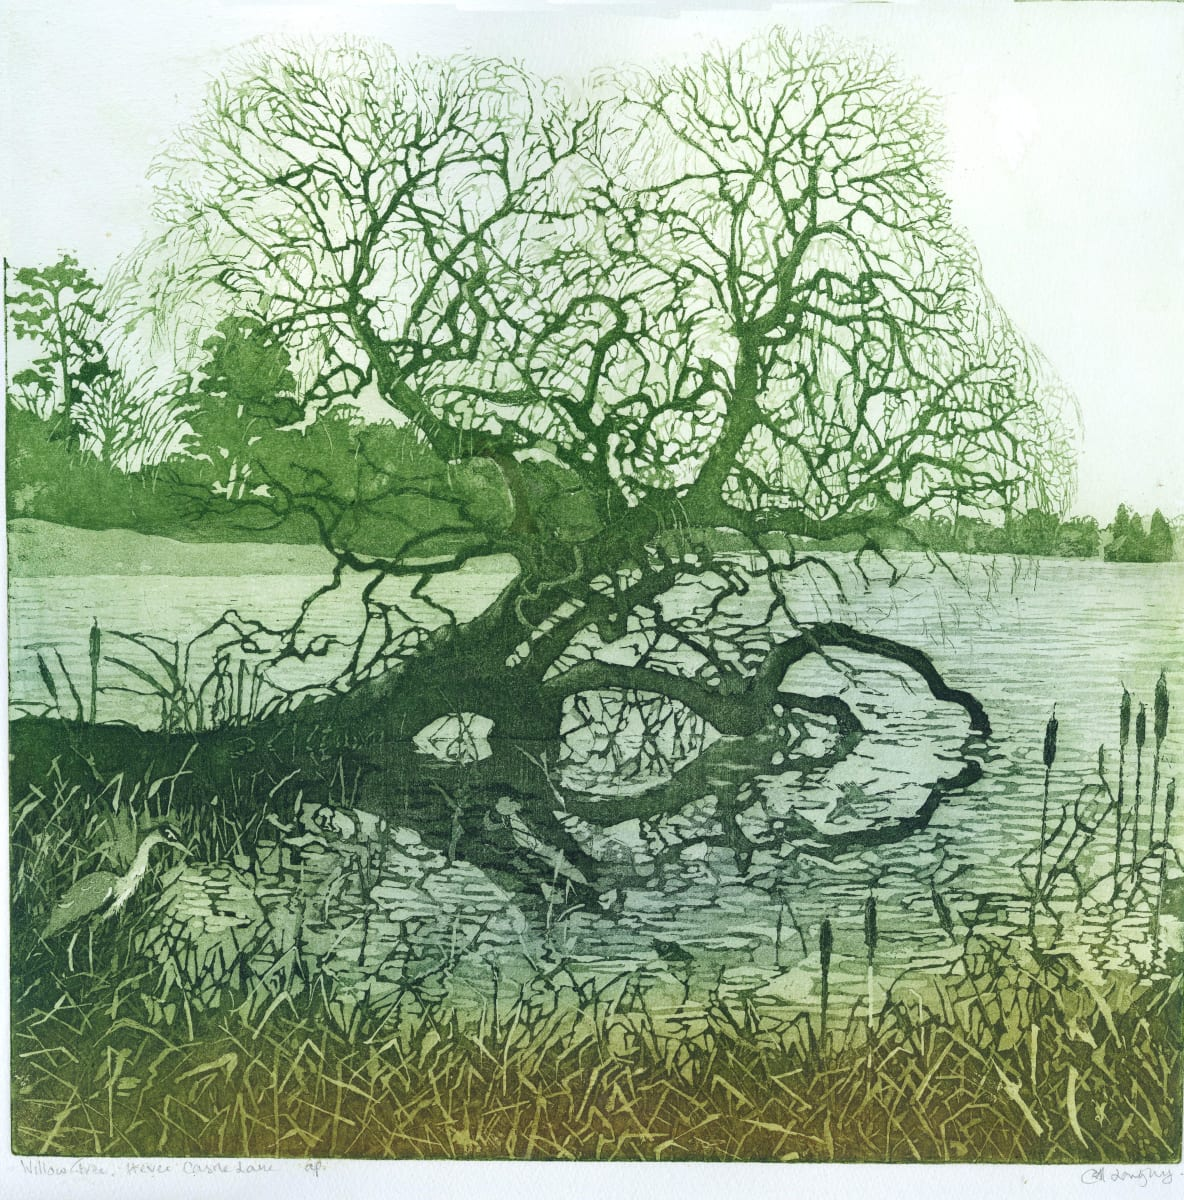 LON181, Willow on Lake at Hever Castle by Claire Longley